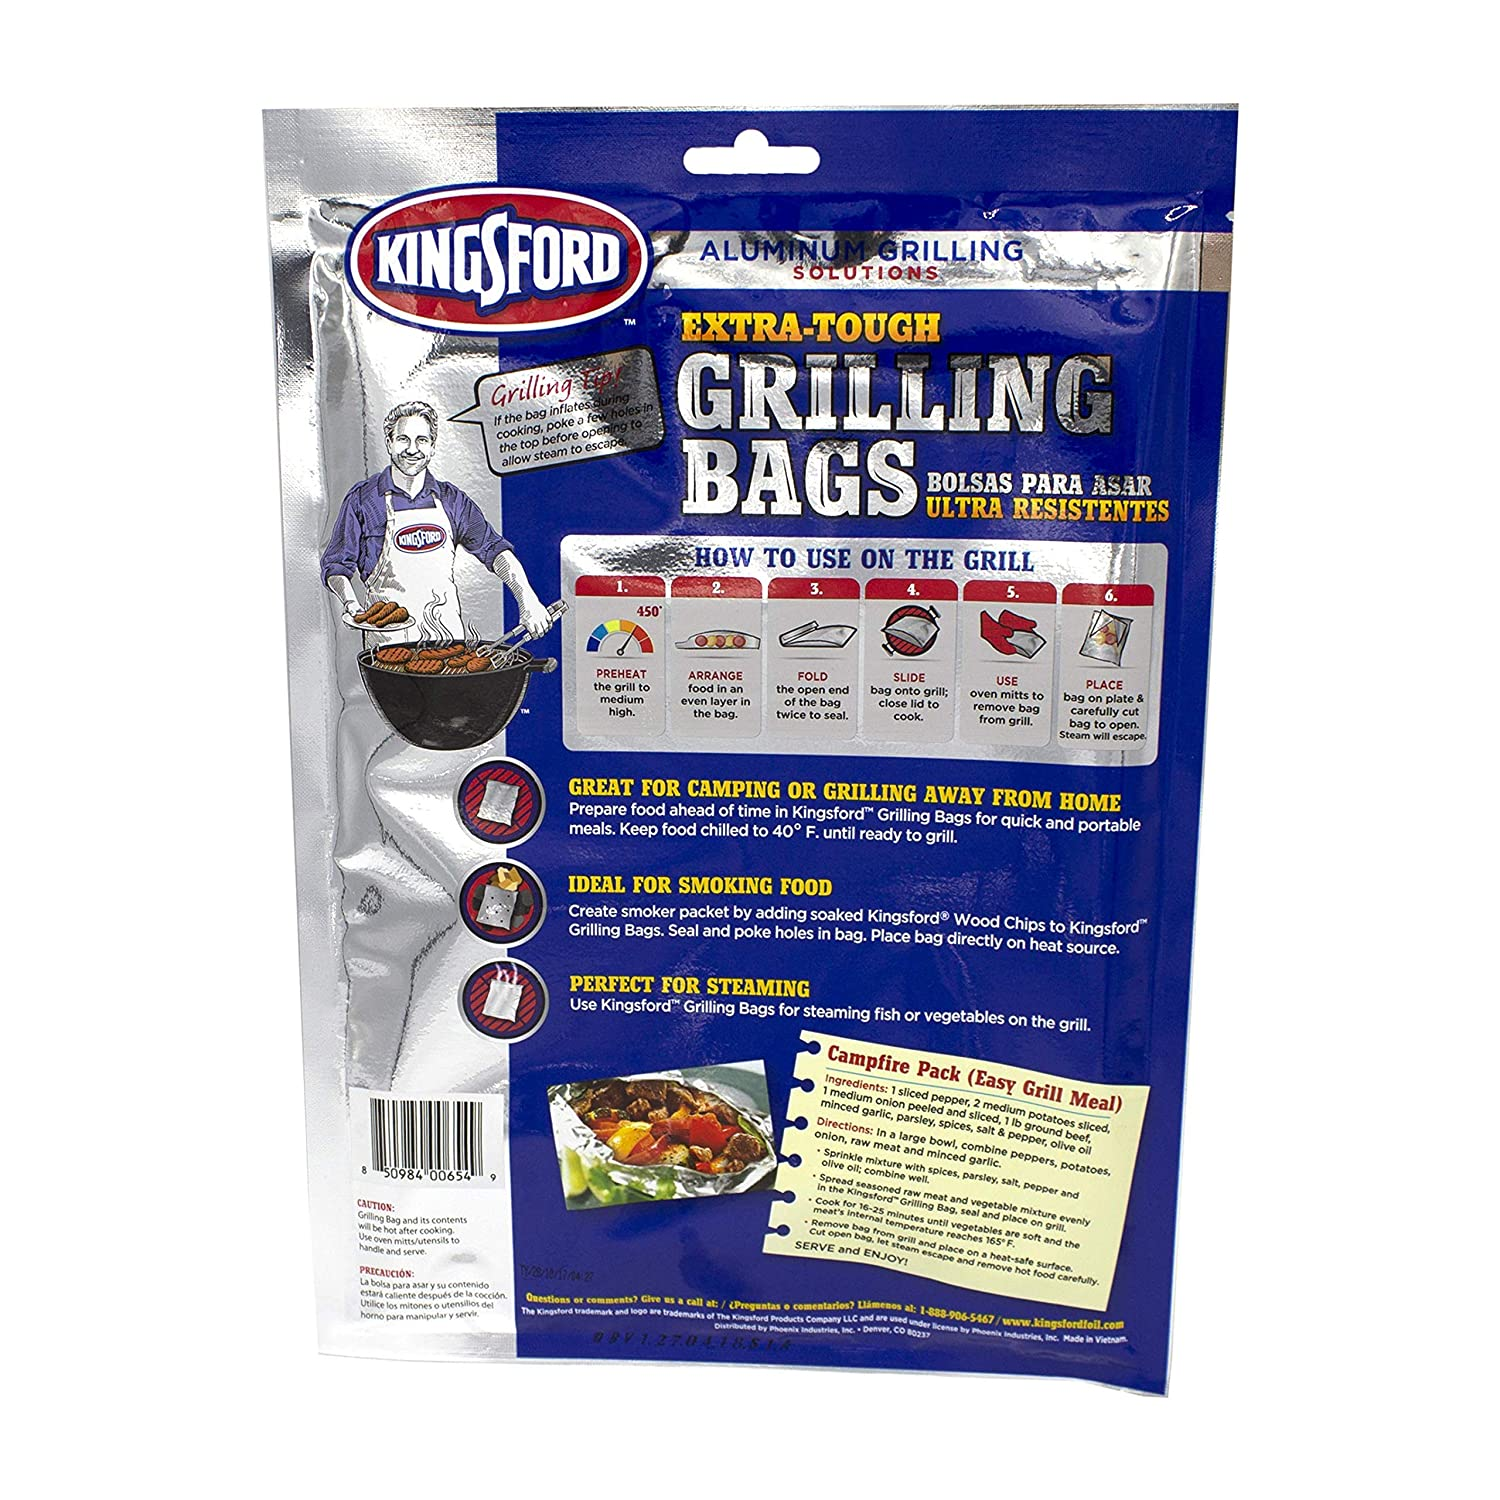 Pack of 4 Silver for Locking in Flavors /& Easy Grill Clean Up 15.5 x 10 New Version Extra Tough Aluminum Grill Bags Recyclable /& Disposable